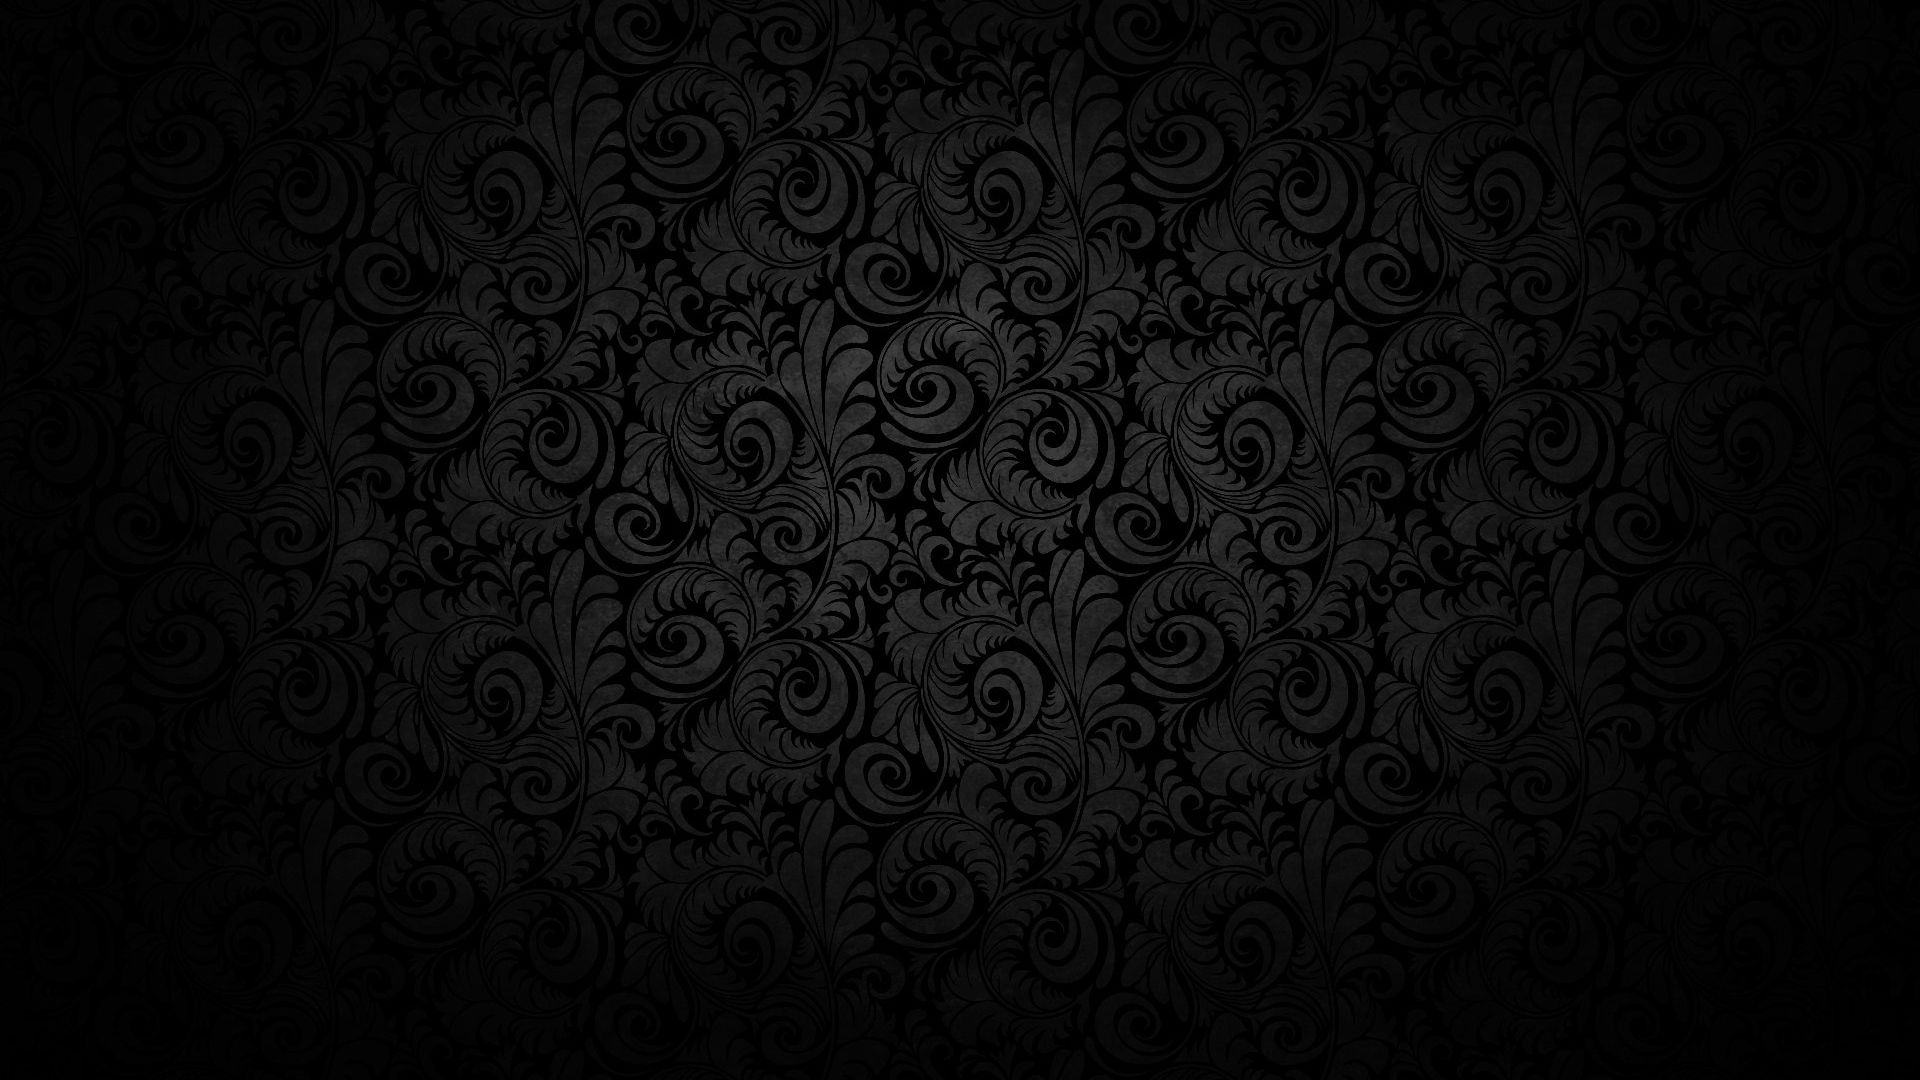 Full Hd 1080p Textures Wallpapers Desktop Backgrounds Hd Black Hd Wallpaper Dark Black Wallpaper Black Background Wallpaper